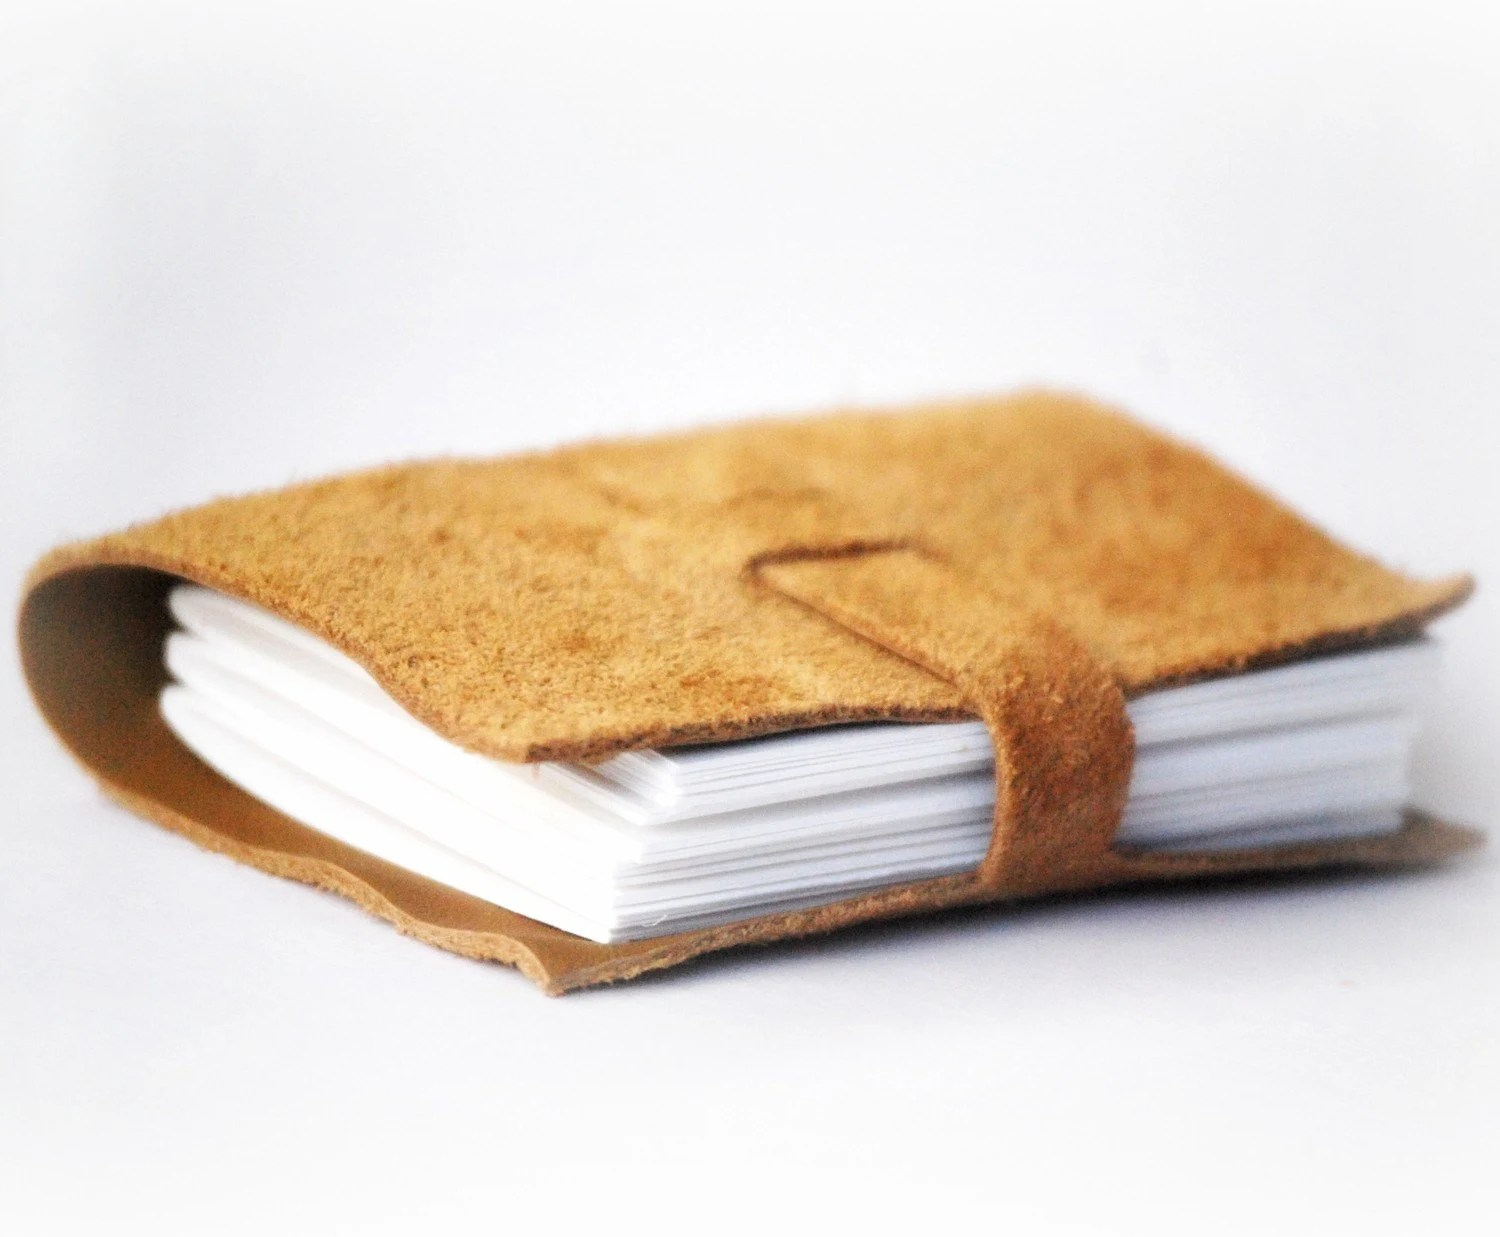 Reclaimed Leather Journal, Notebook, and Sketchbook - Eco-Friendly and Recycled - Honey Caramel White Tan